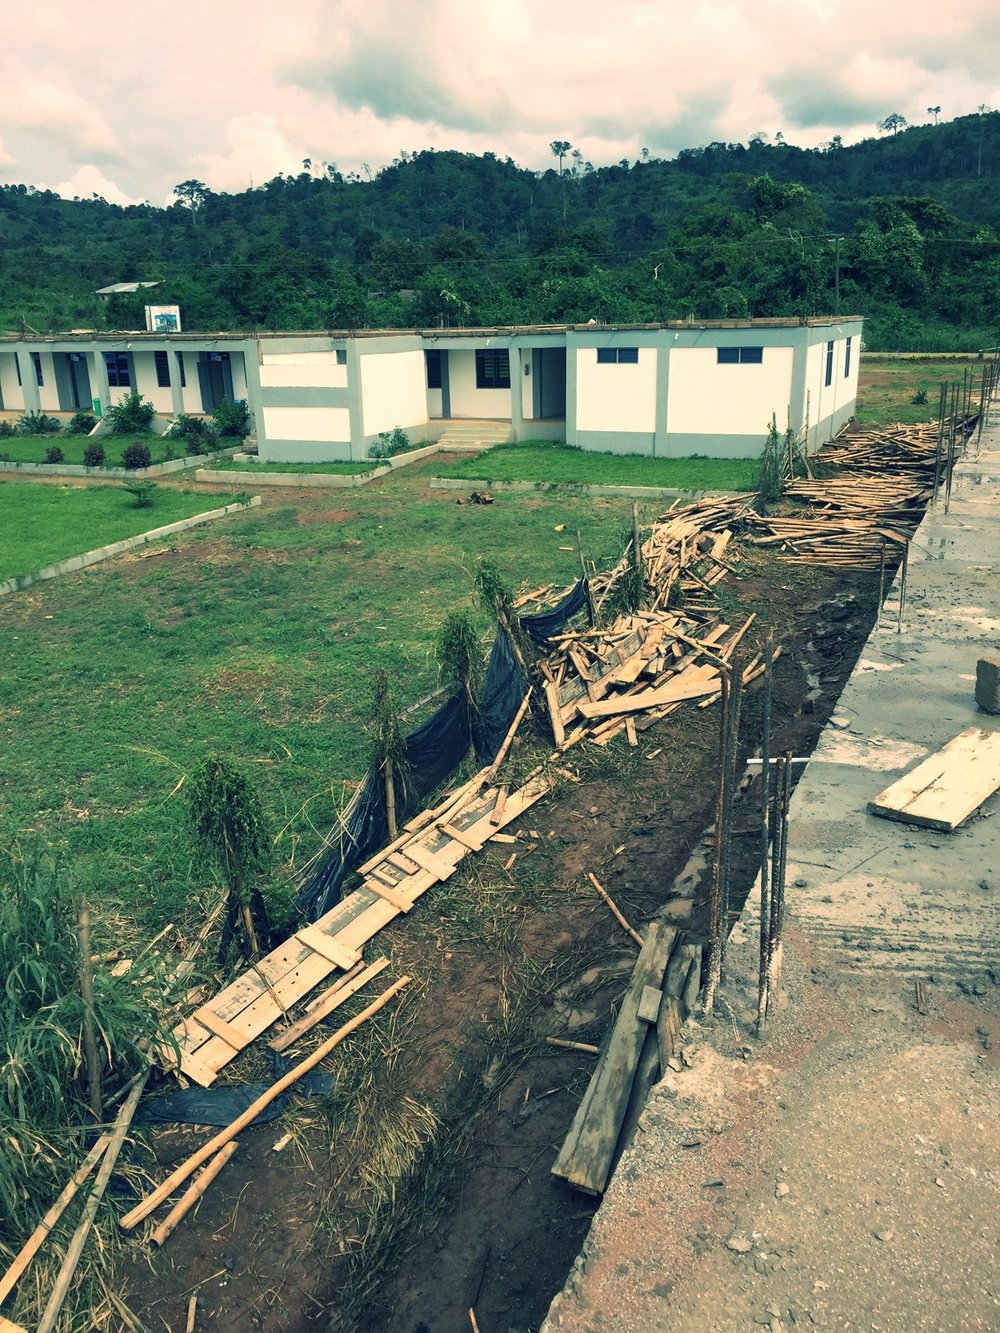 View of phase 1 form topf of phase 2 (June 2017).JPG